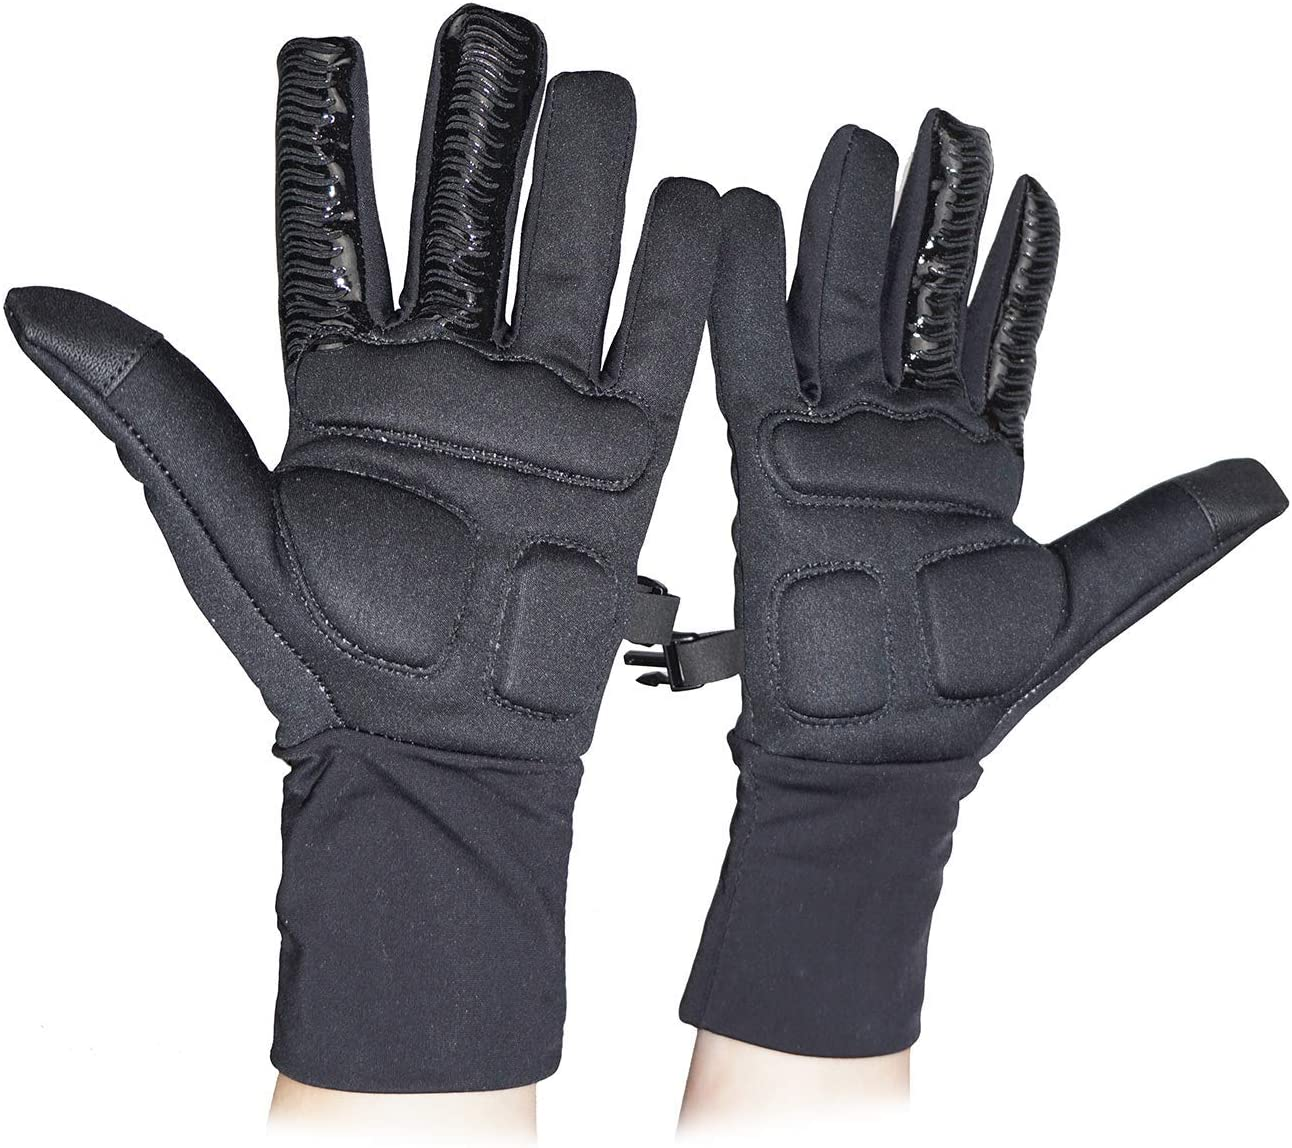 Figure Skating Gloves Padded Gel Palm Protection Water Resistant Warm Touchscreen Non Slip